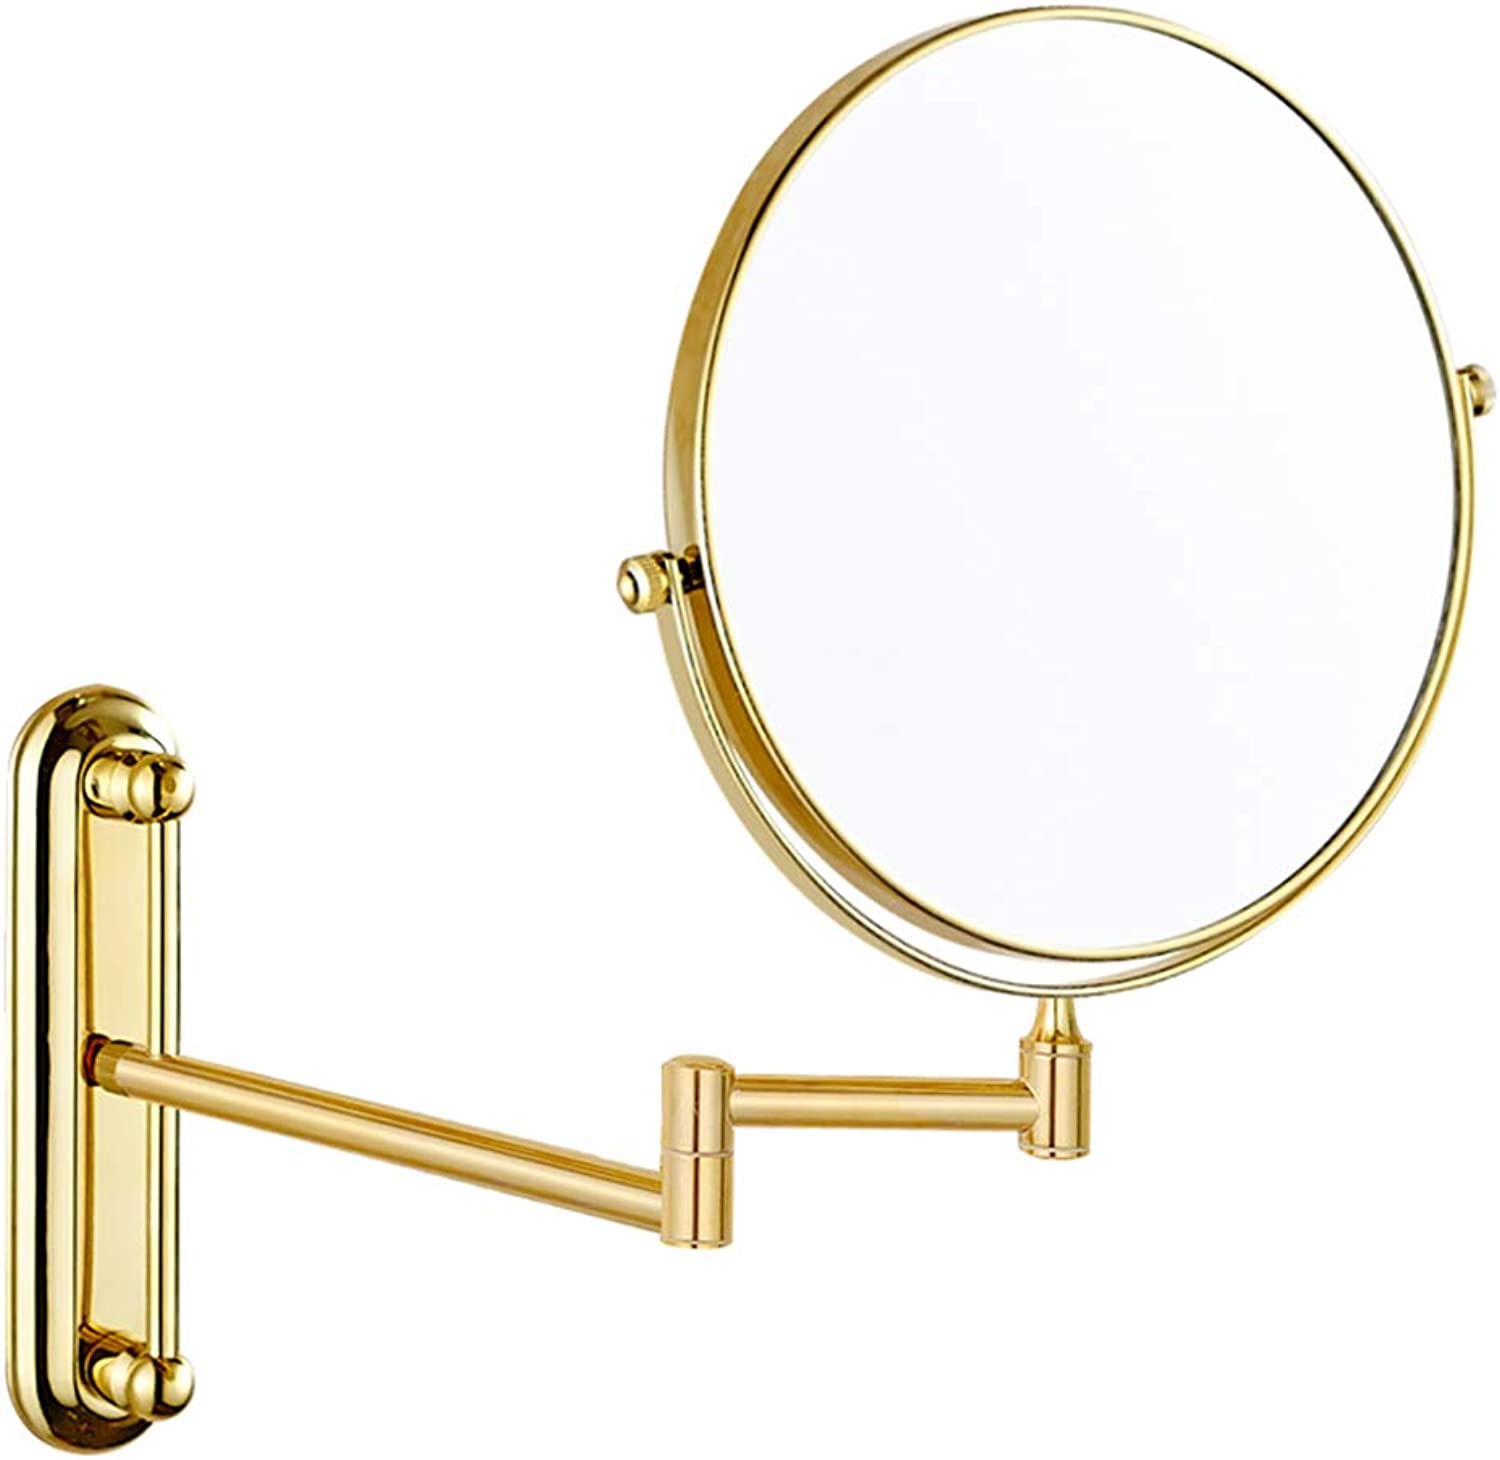 Bathroom mirror gold Hotel Wall mirror Folding Folding Telescopic mirror HD mirror +3X Magnifying Glass Double-Sided Makeup mirror (Size   150mm)